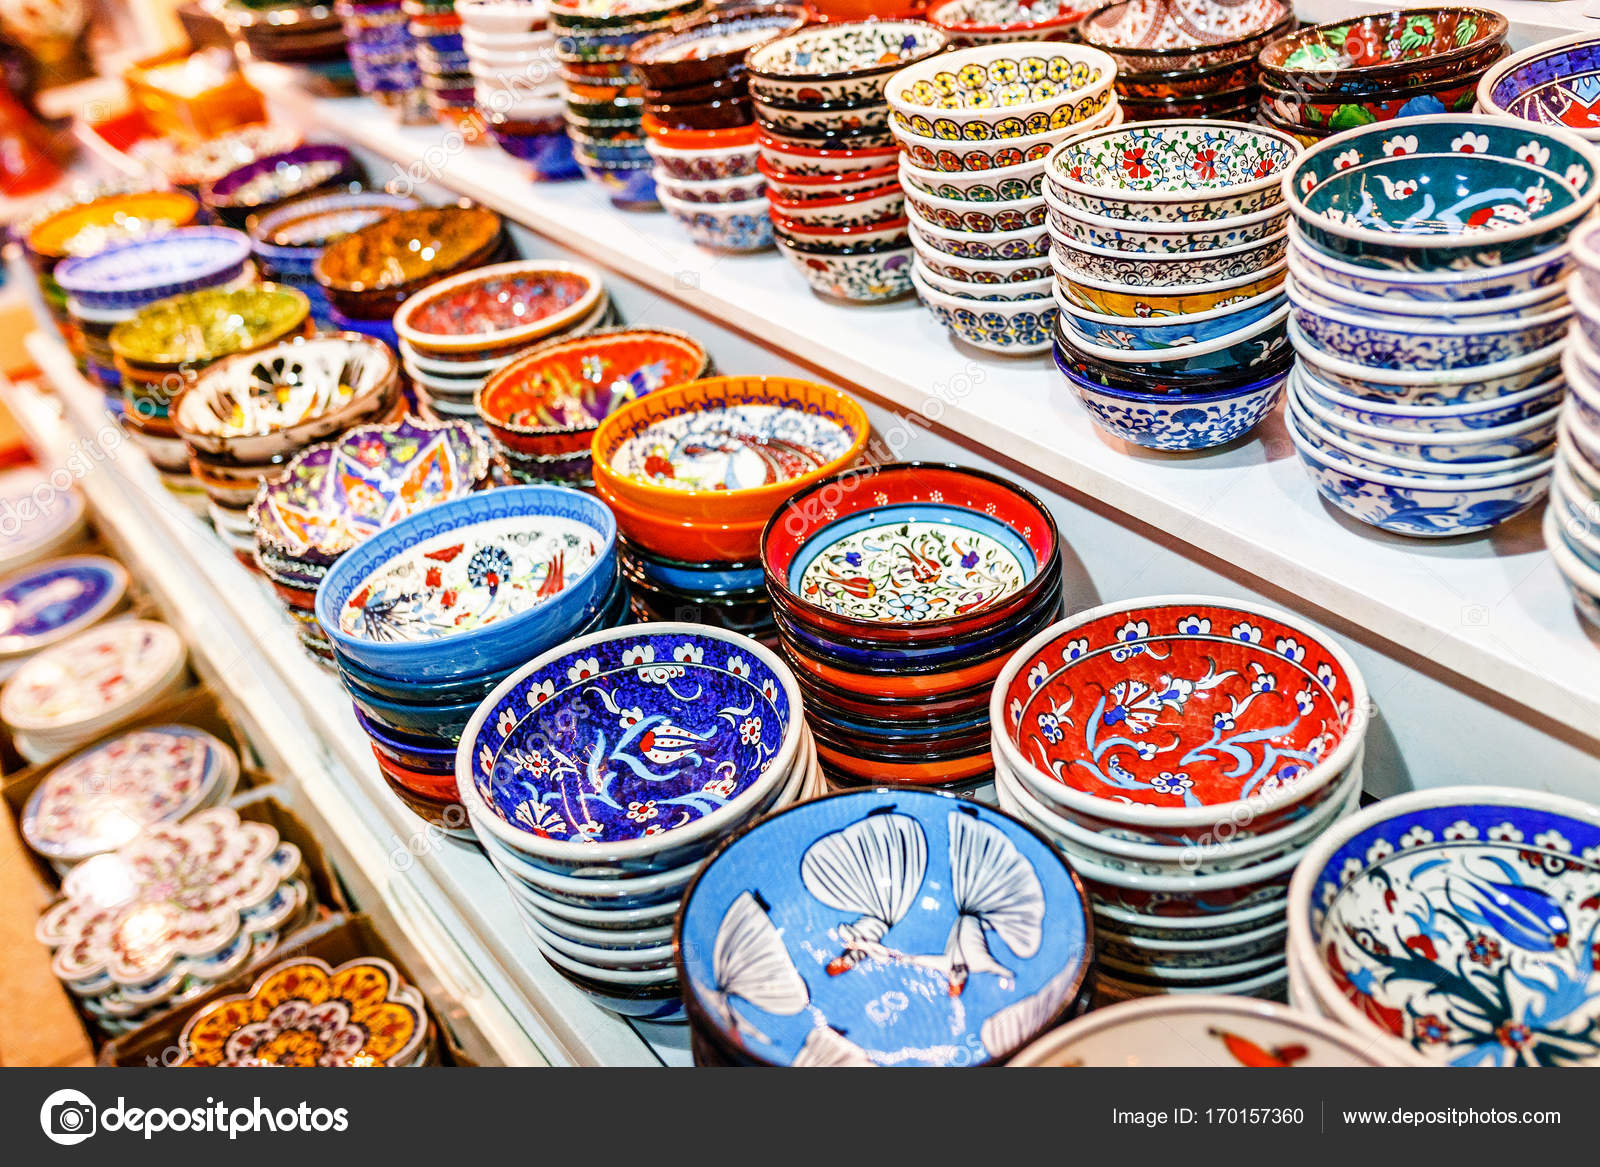 Traditional handmade Turkish colorful ceramic plates on the market for sale u2014 Stock Photo & Traditional handmade Turkish colorful ceramic plates on the market ...